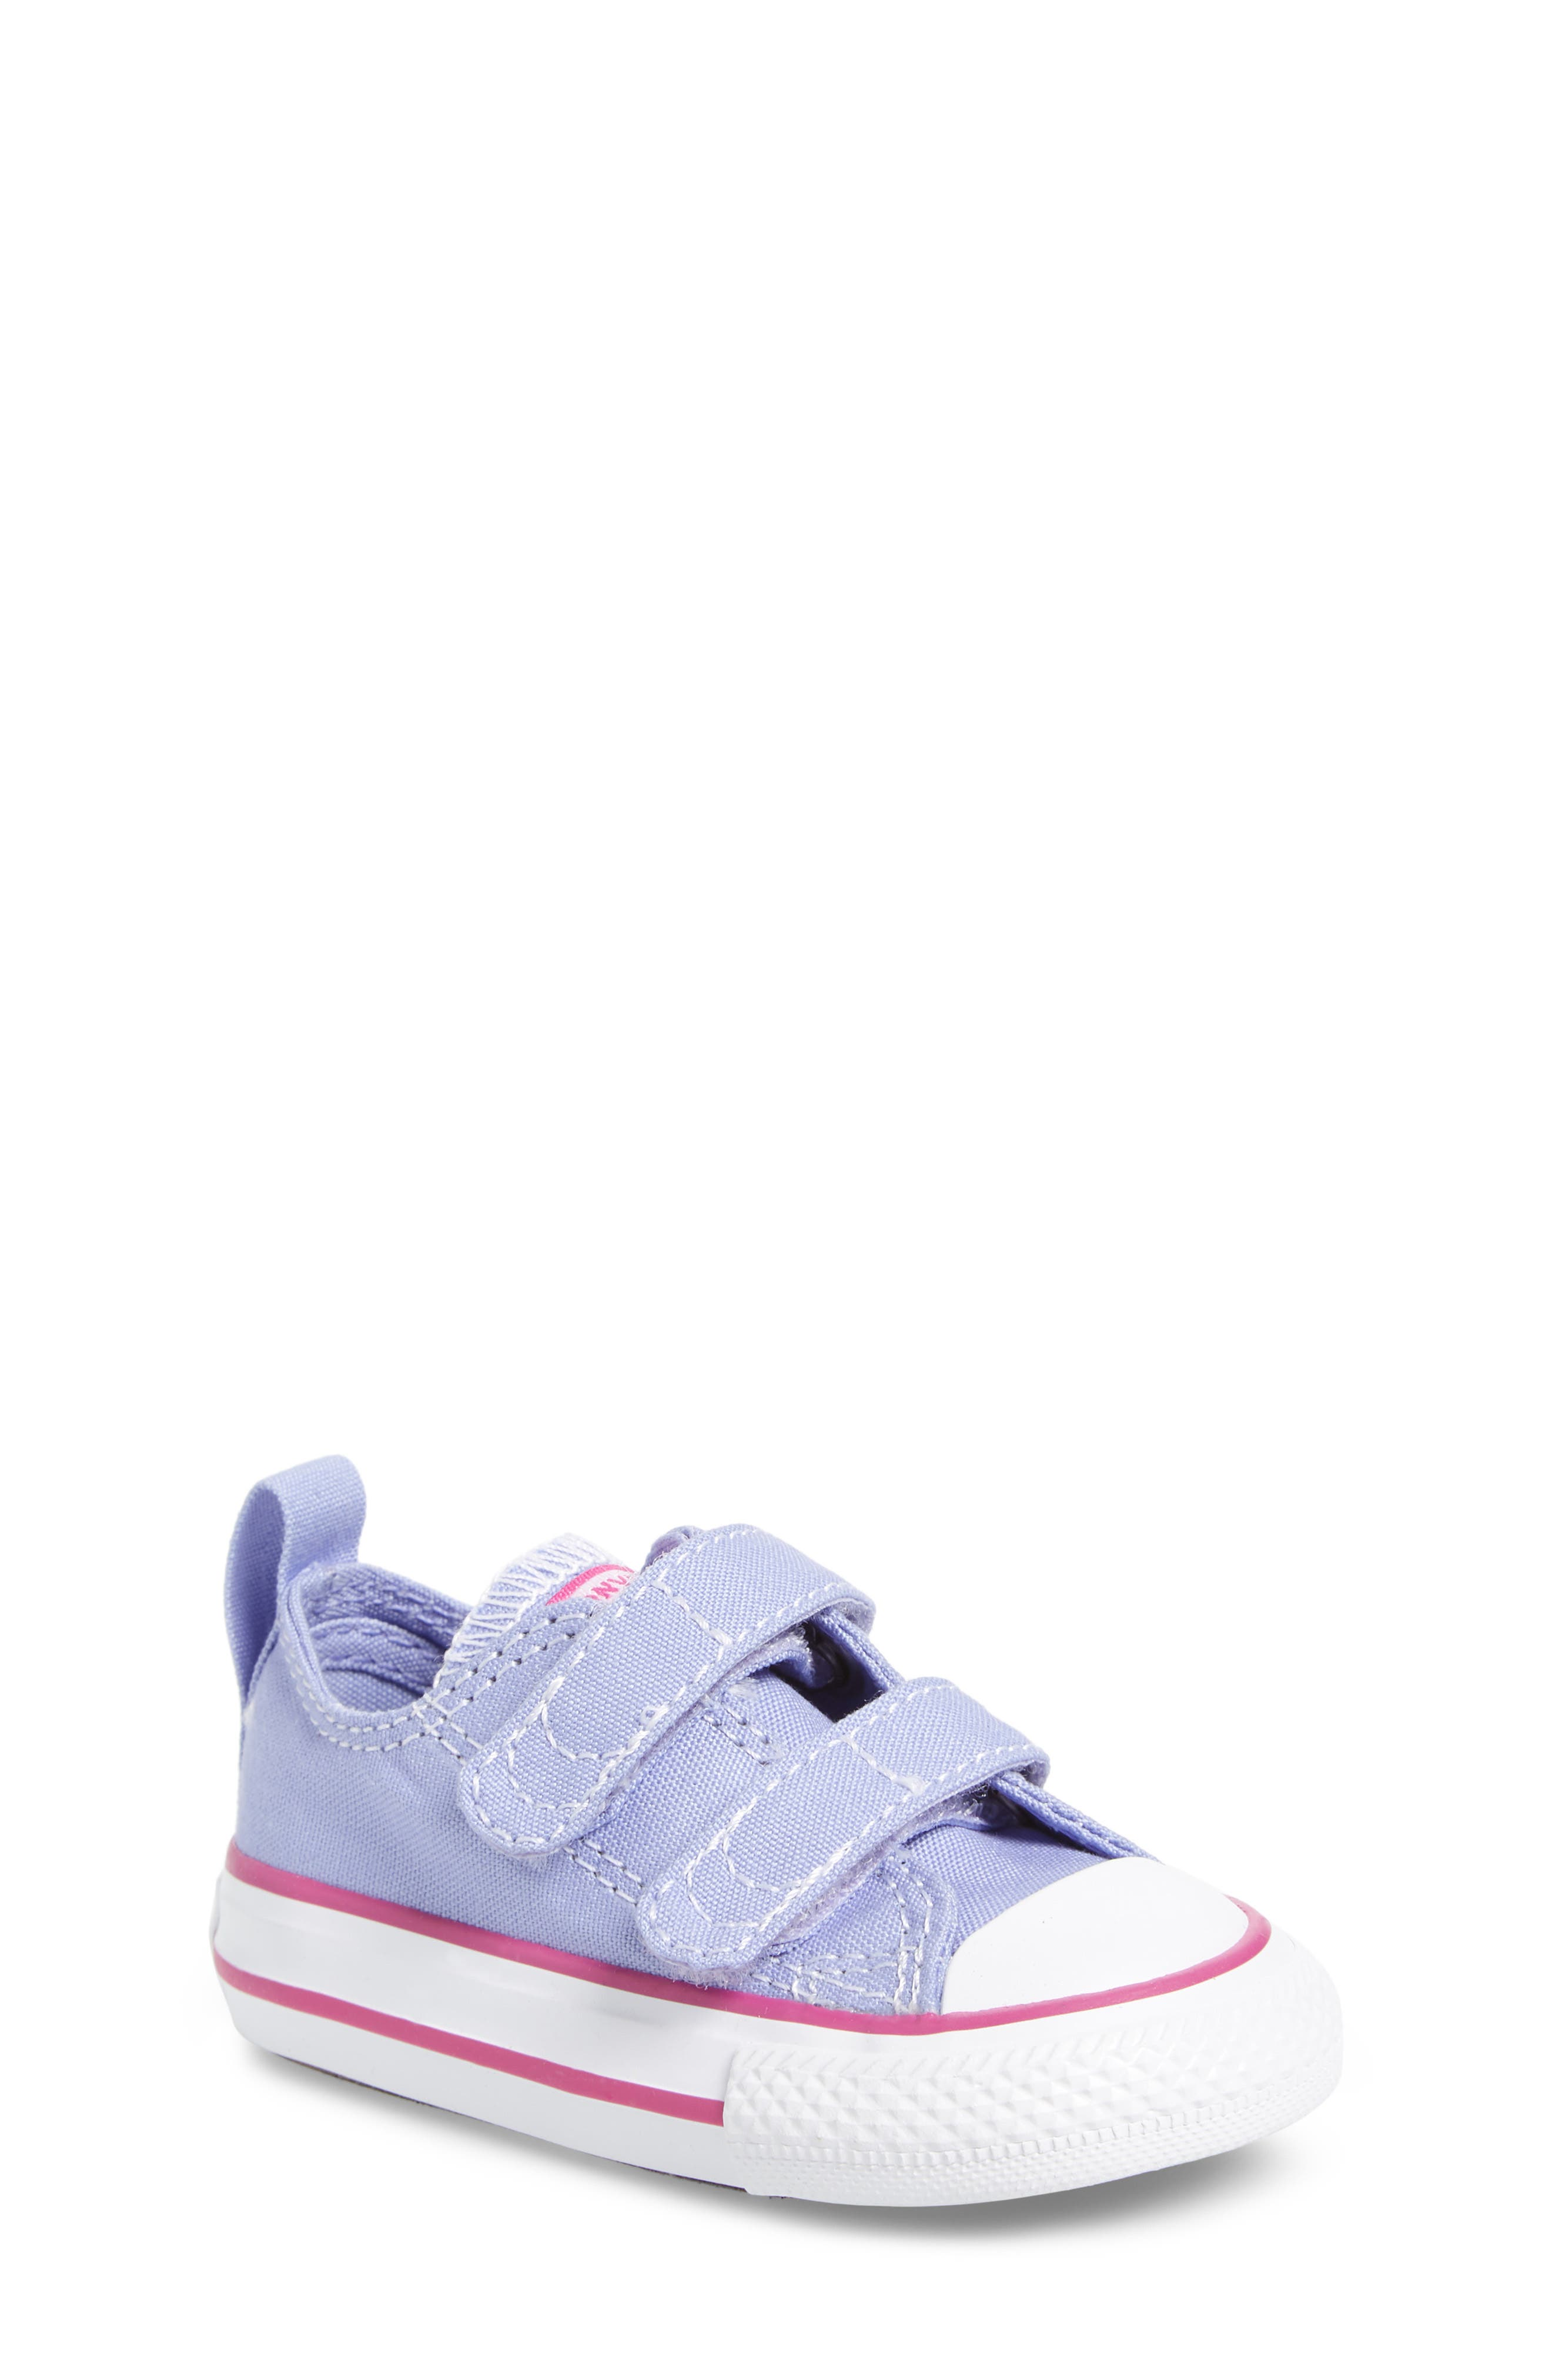 All Star<sup>®</sup> 2V Low Top Sneaker,                         Main,                         color, Twilight Purple